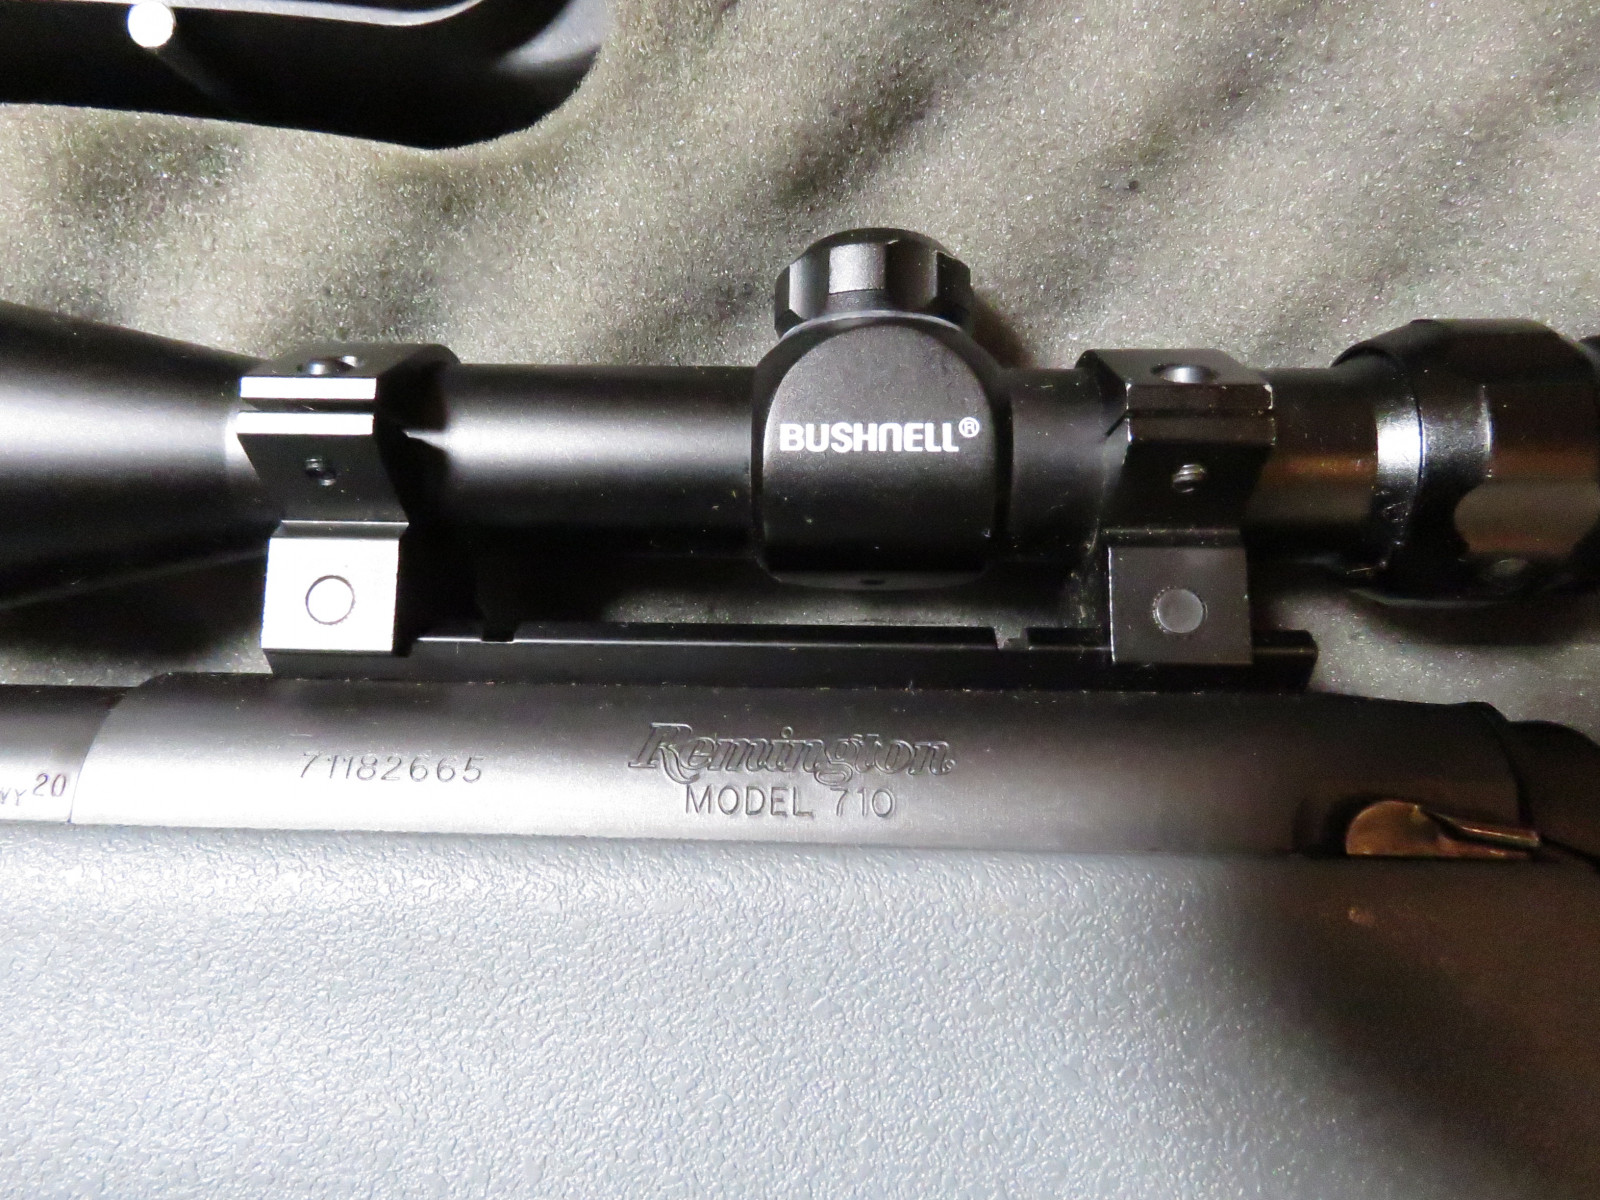 Remington Model 710 7MM Rifle - Image 3